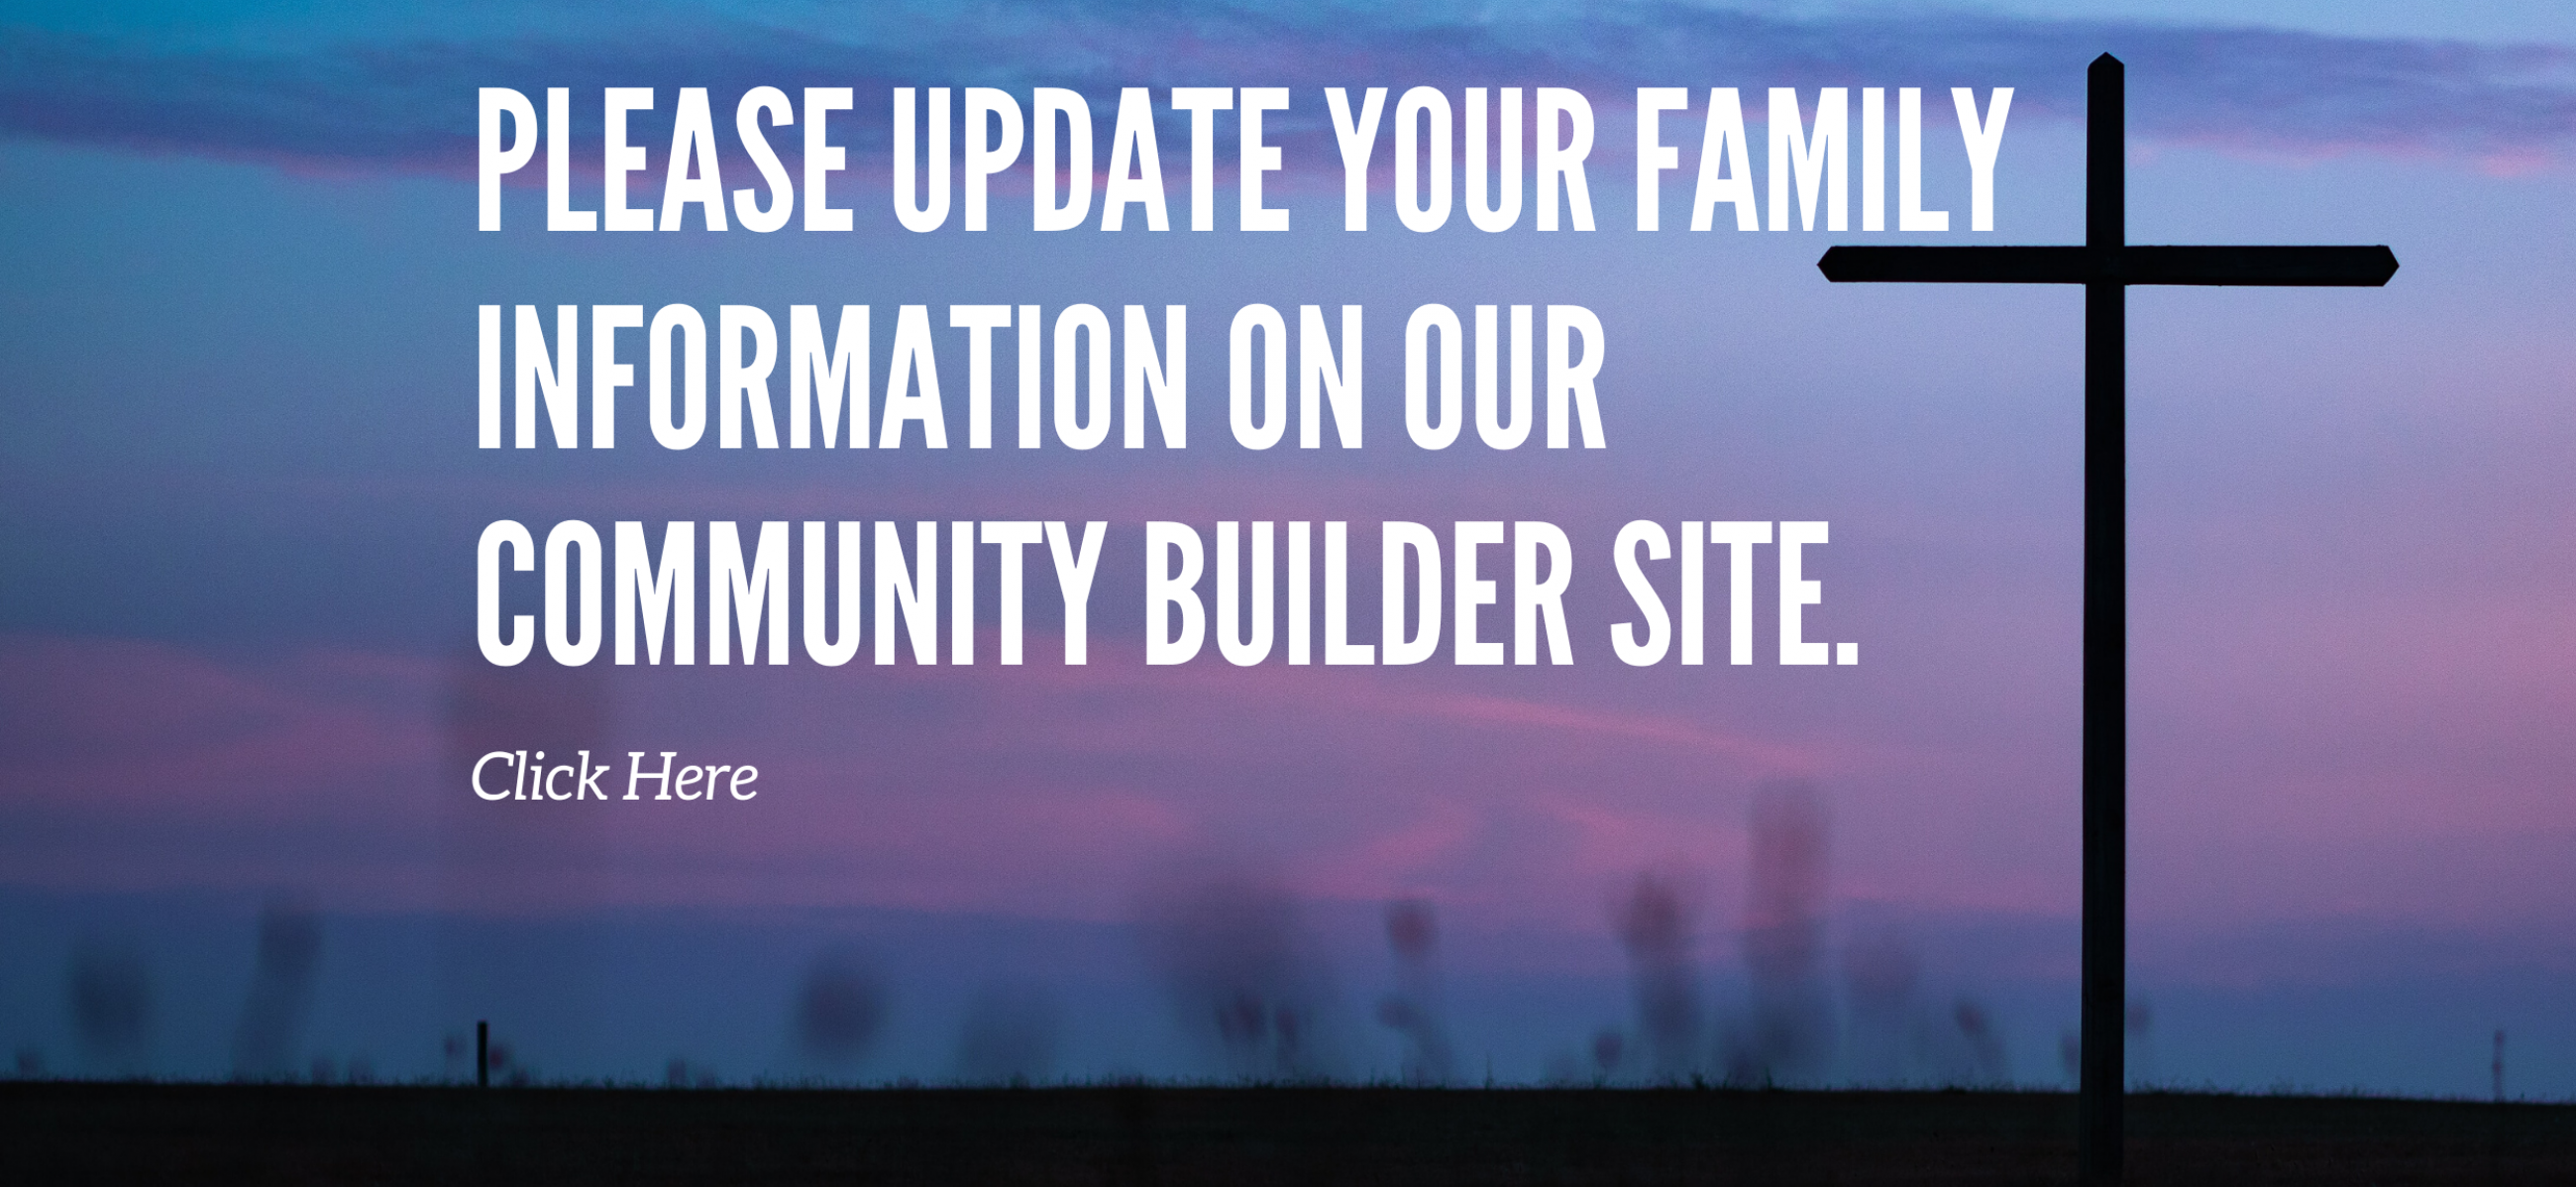 Weymouth Community Church Update Family Info